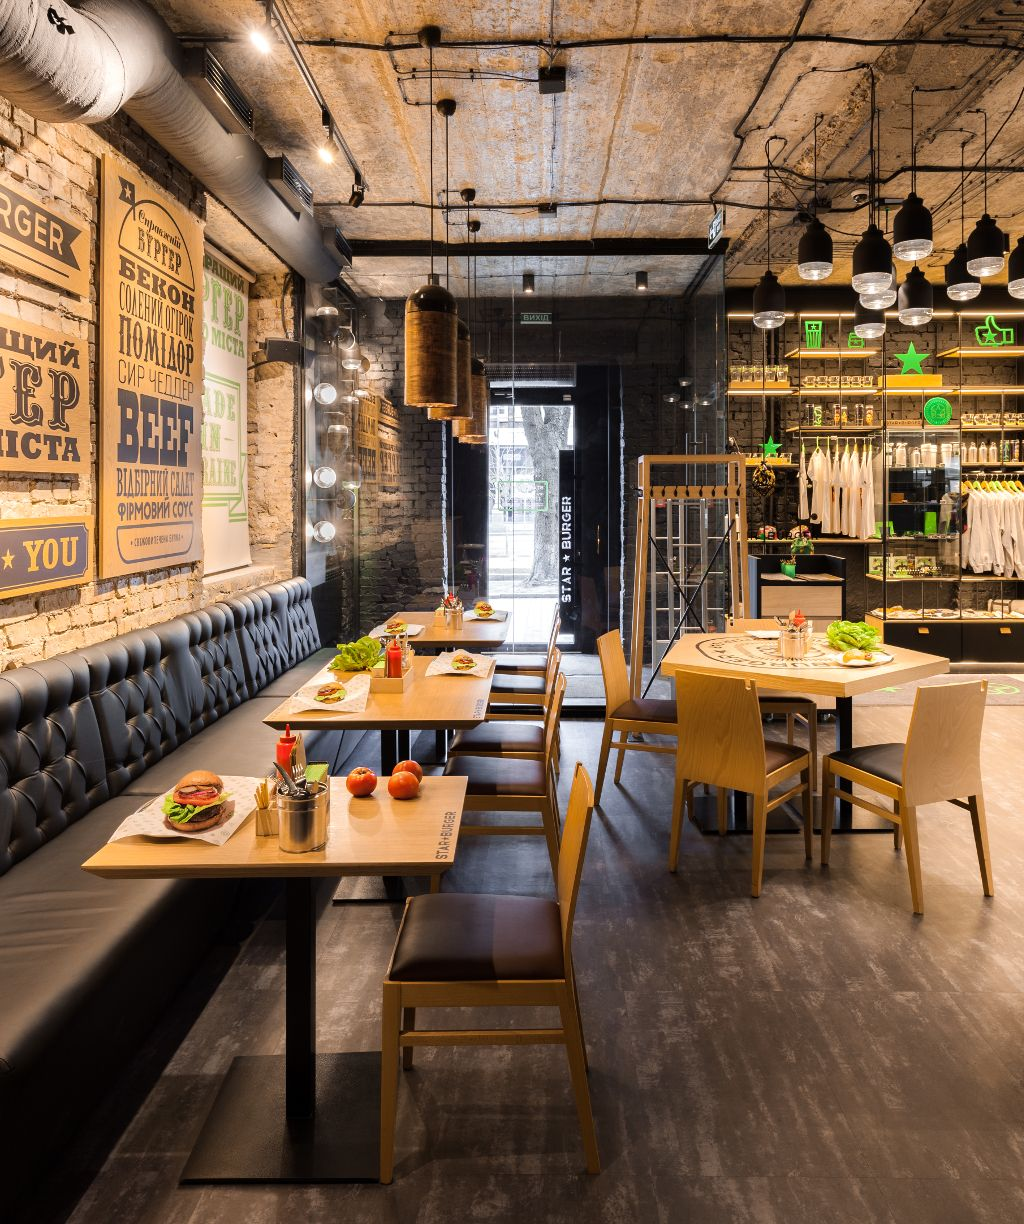 Designs de interiores de cafeterias restaurantes bares e for Design shop de